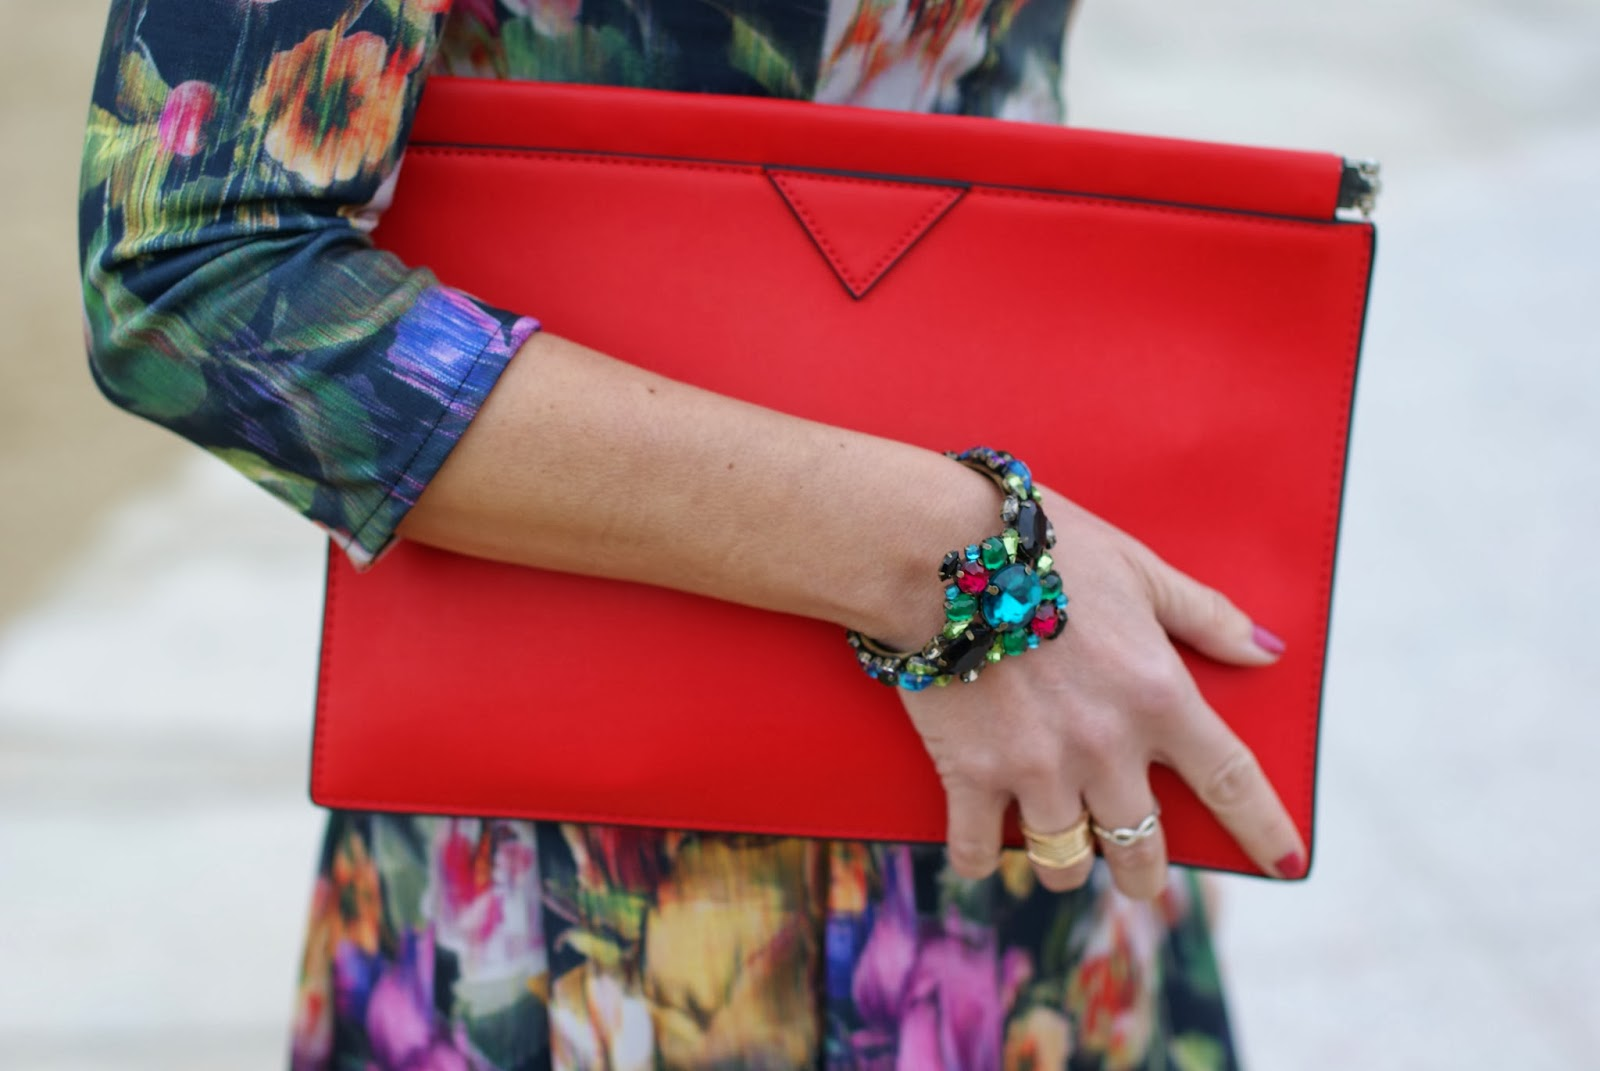 Mercantia salome bracciale, Zara red clutch, Fashion and Cookies, fashion blogger